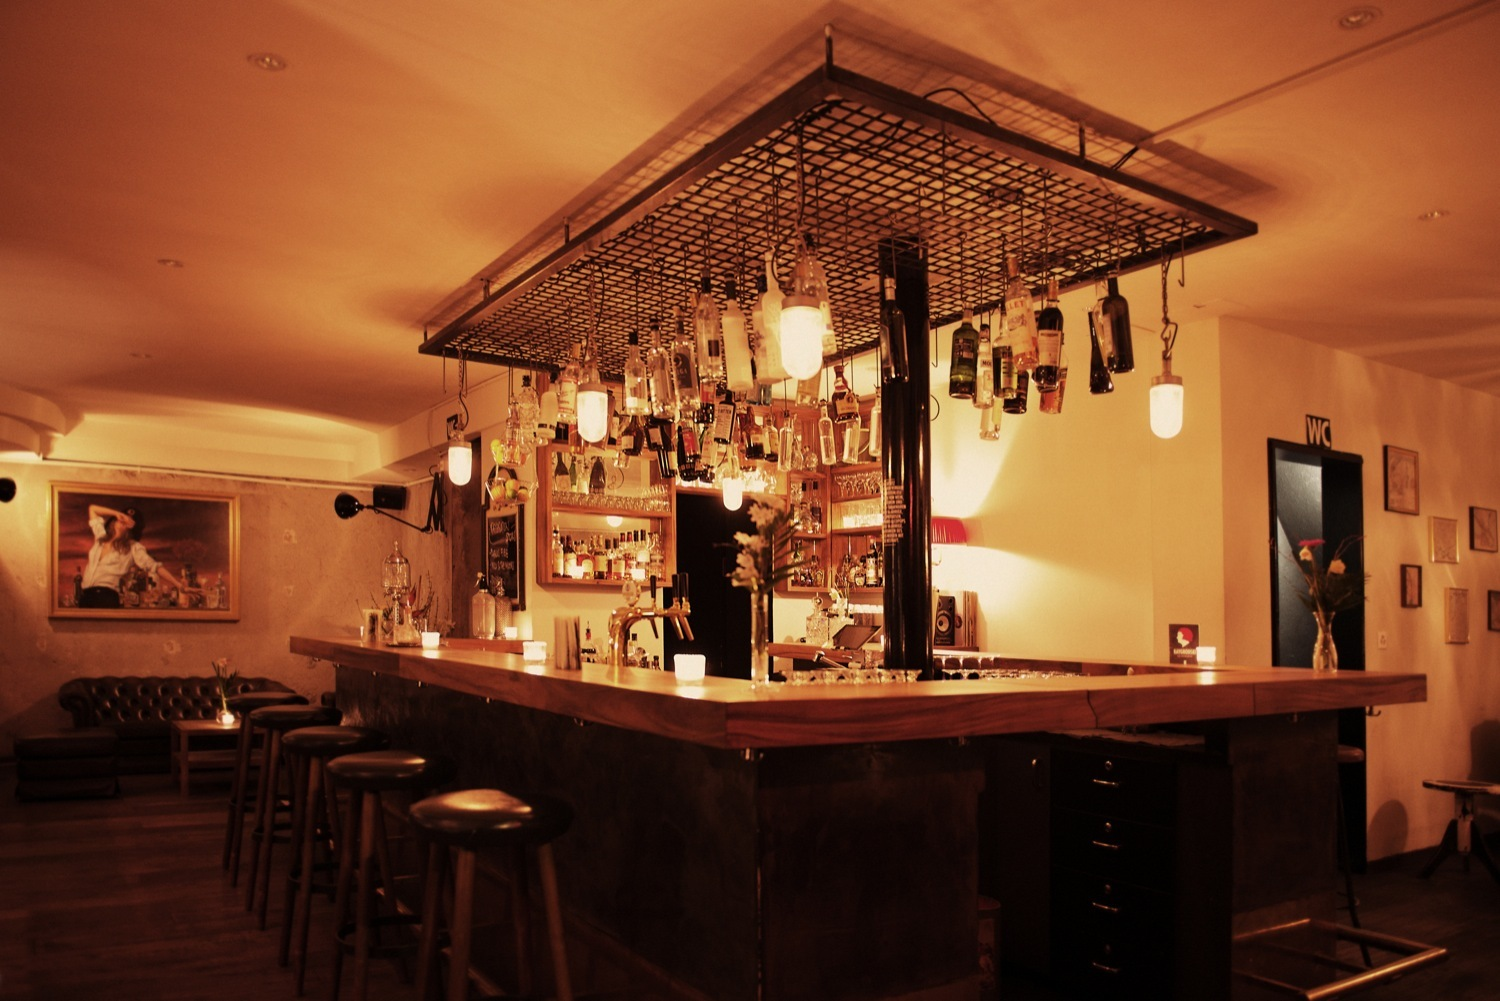 Raygrodski is a cocktail bar in Zurich